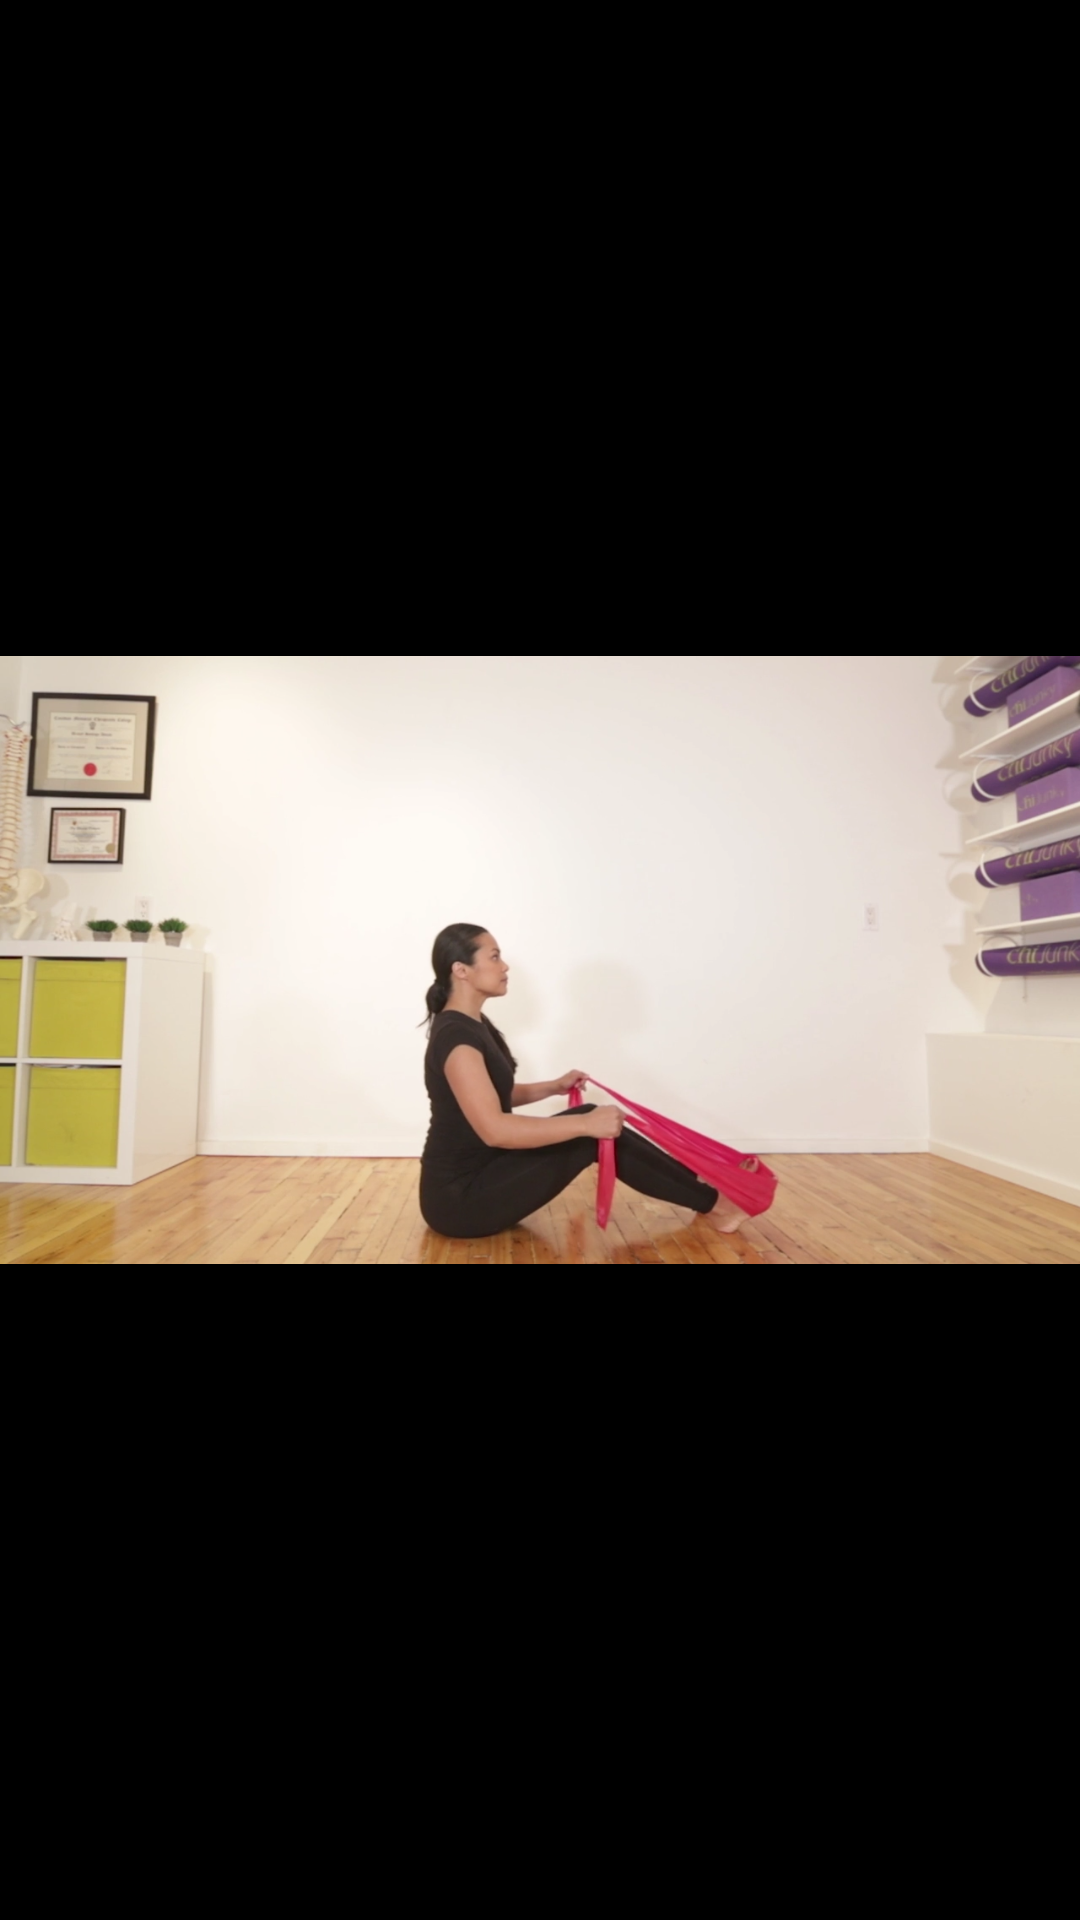 Video: Pilates Half Roll Back for Low Back Stiffness and Core Activation